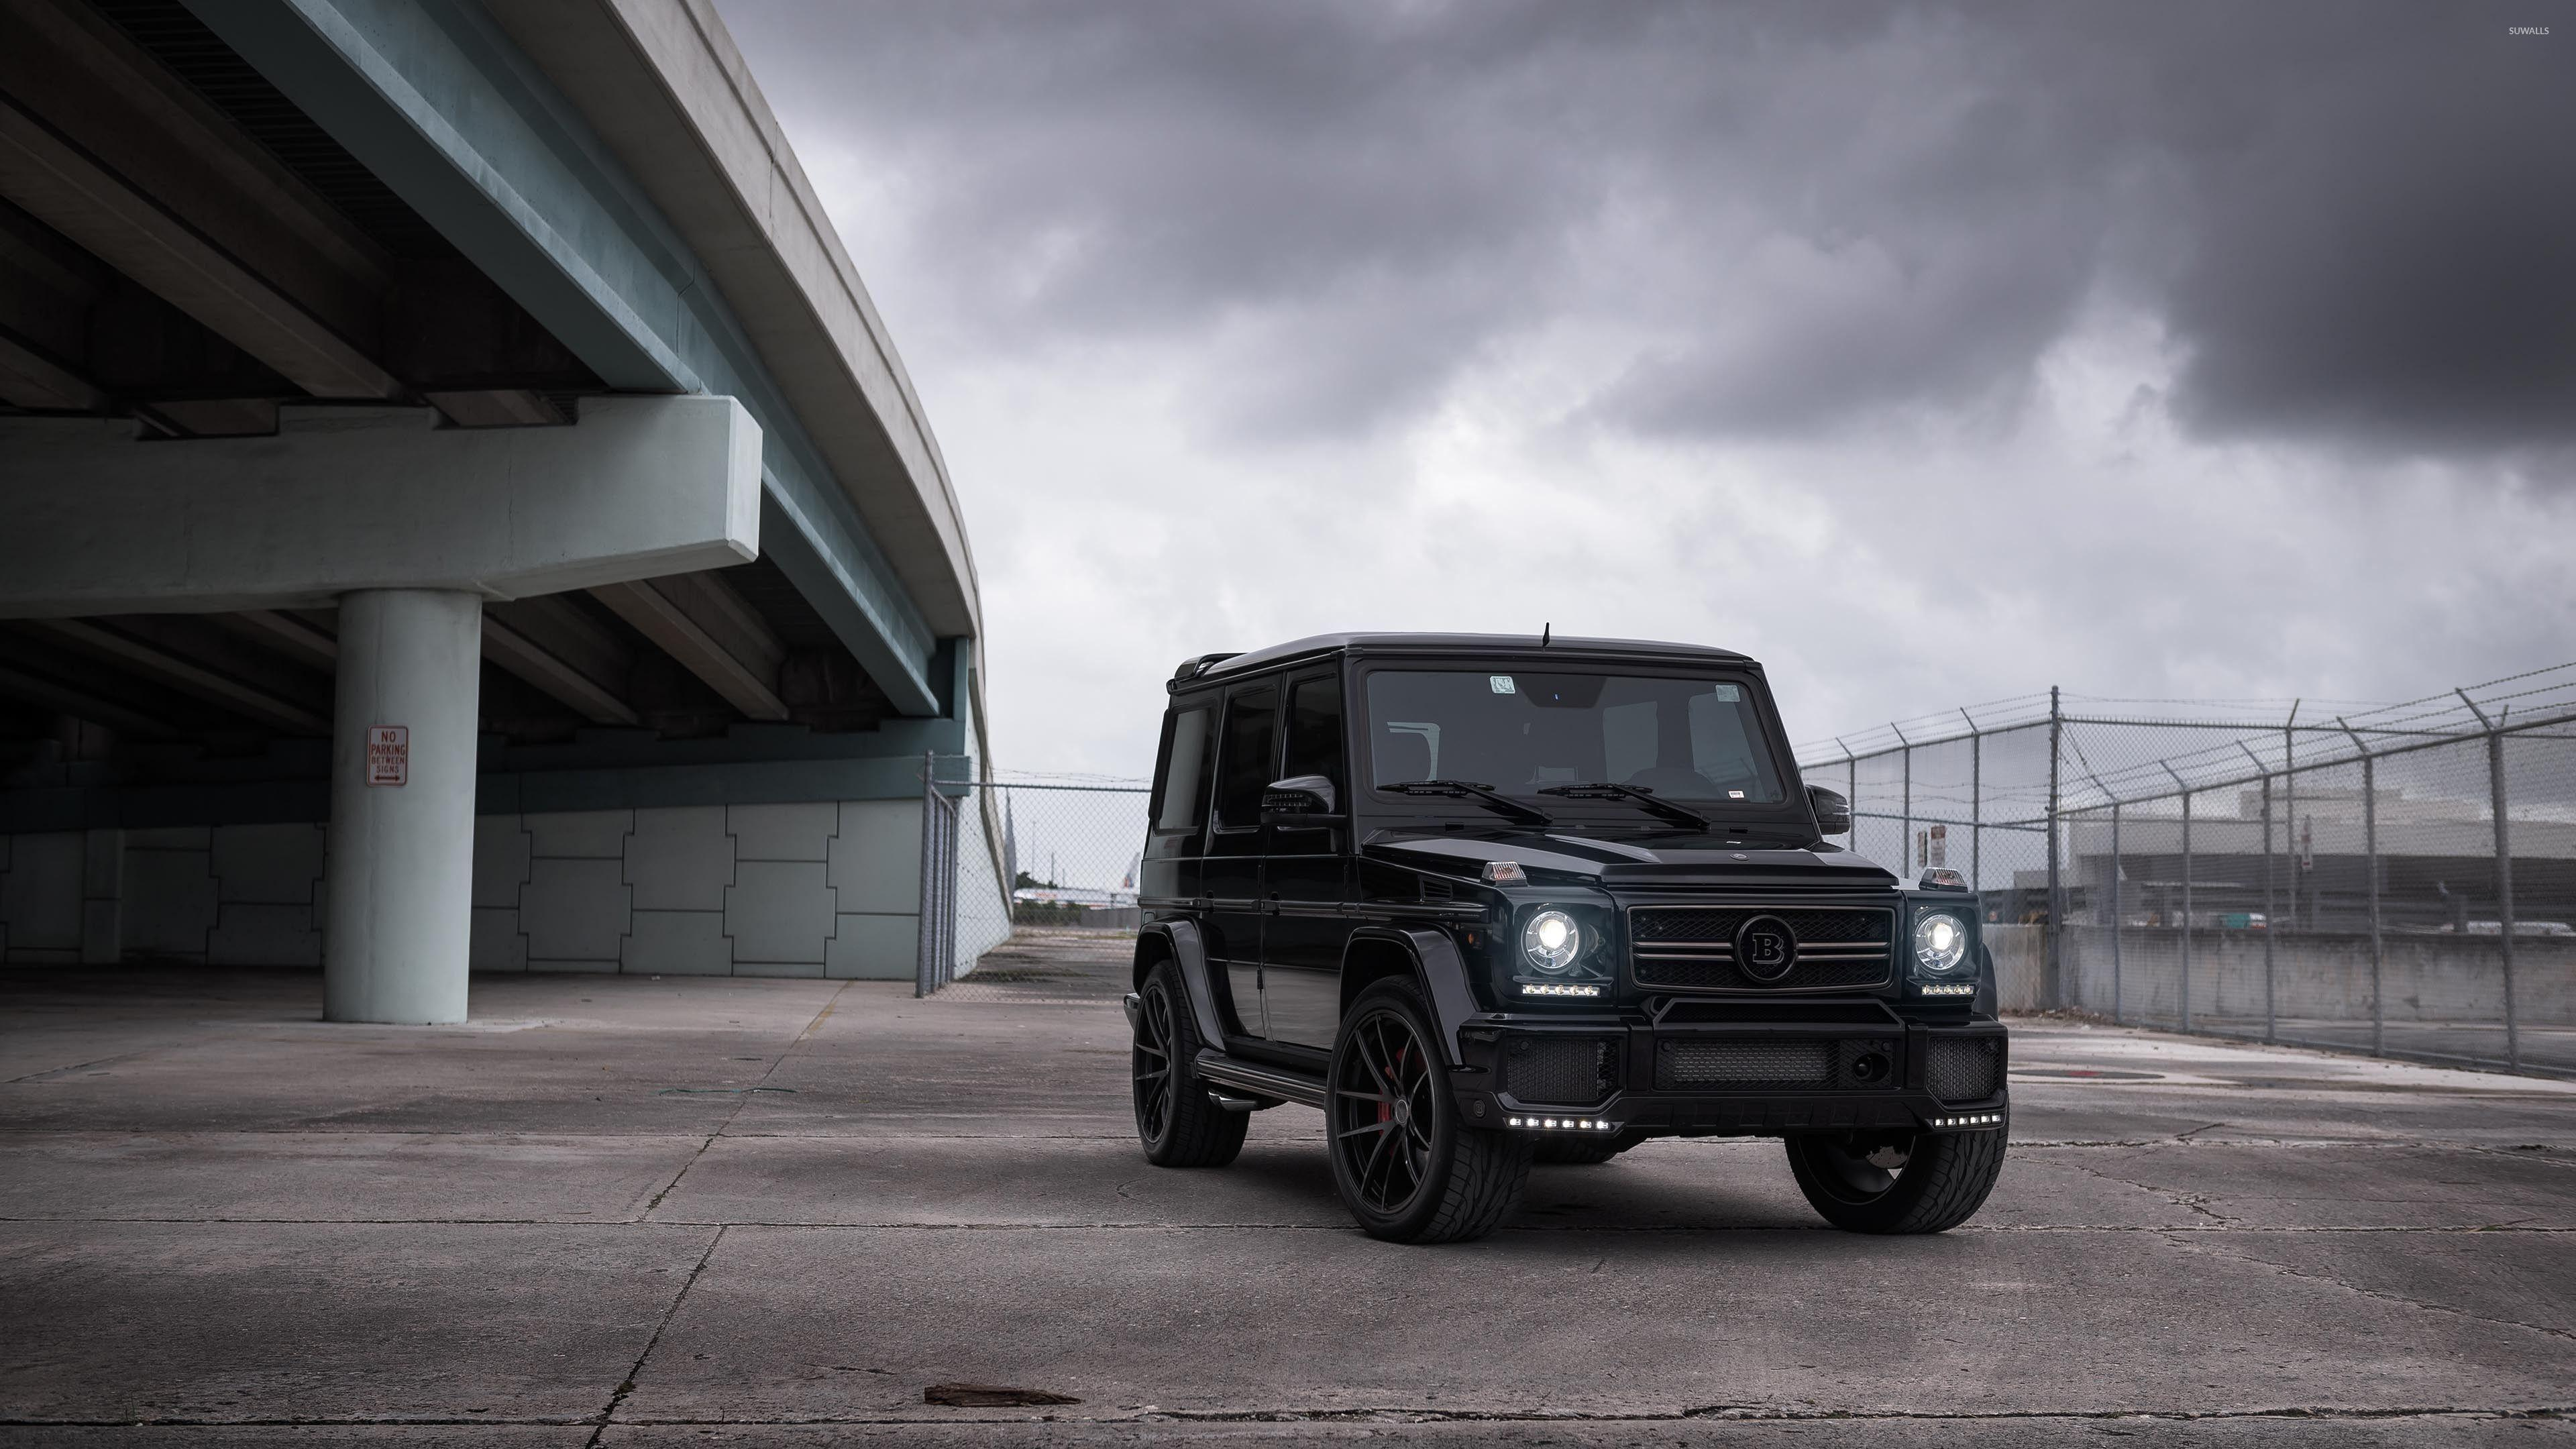 mercedes-benz g-class wallpapers - wallpaper cave